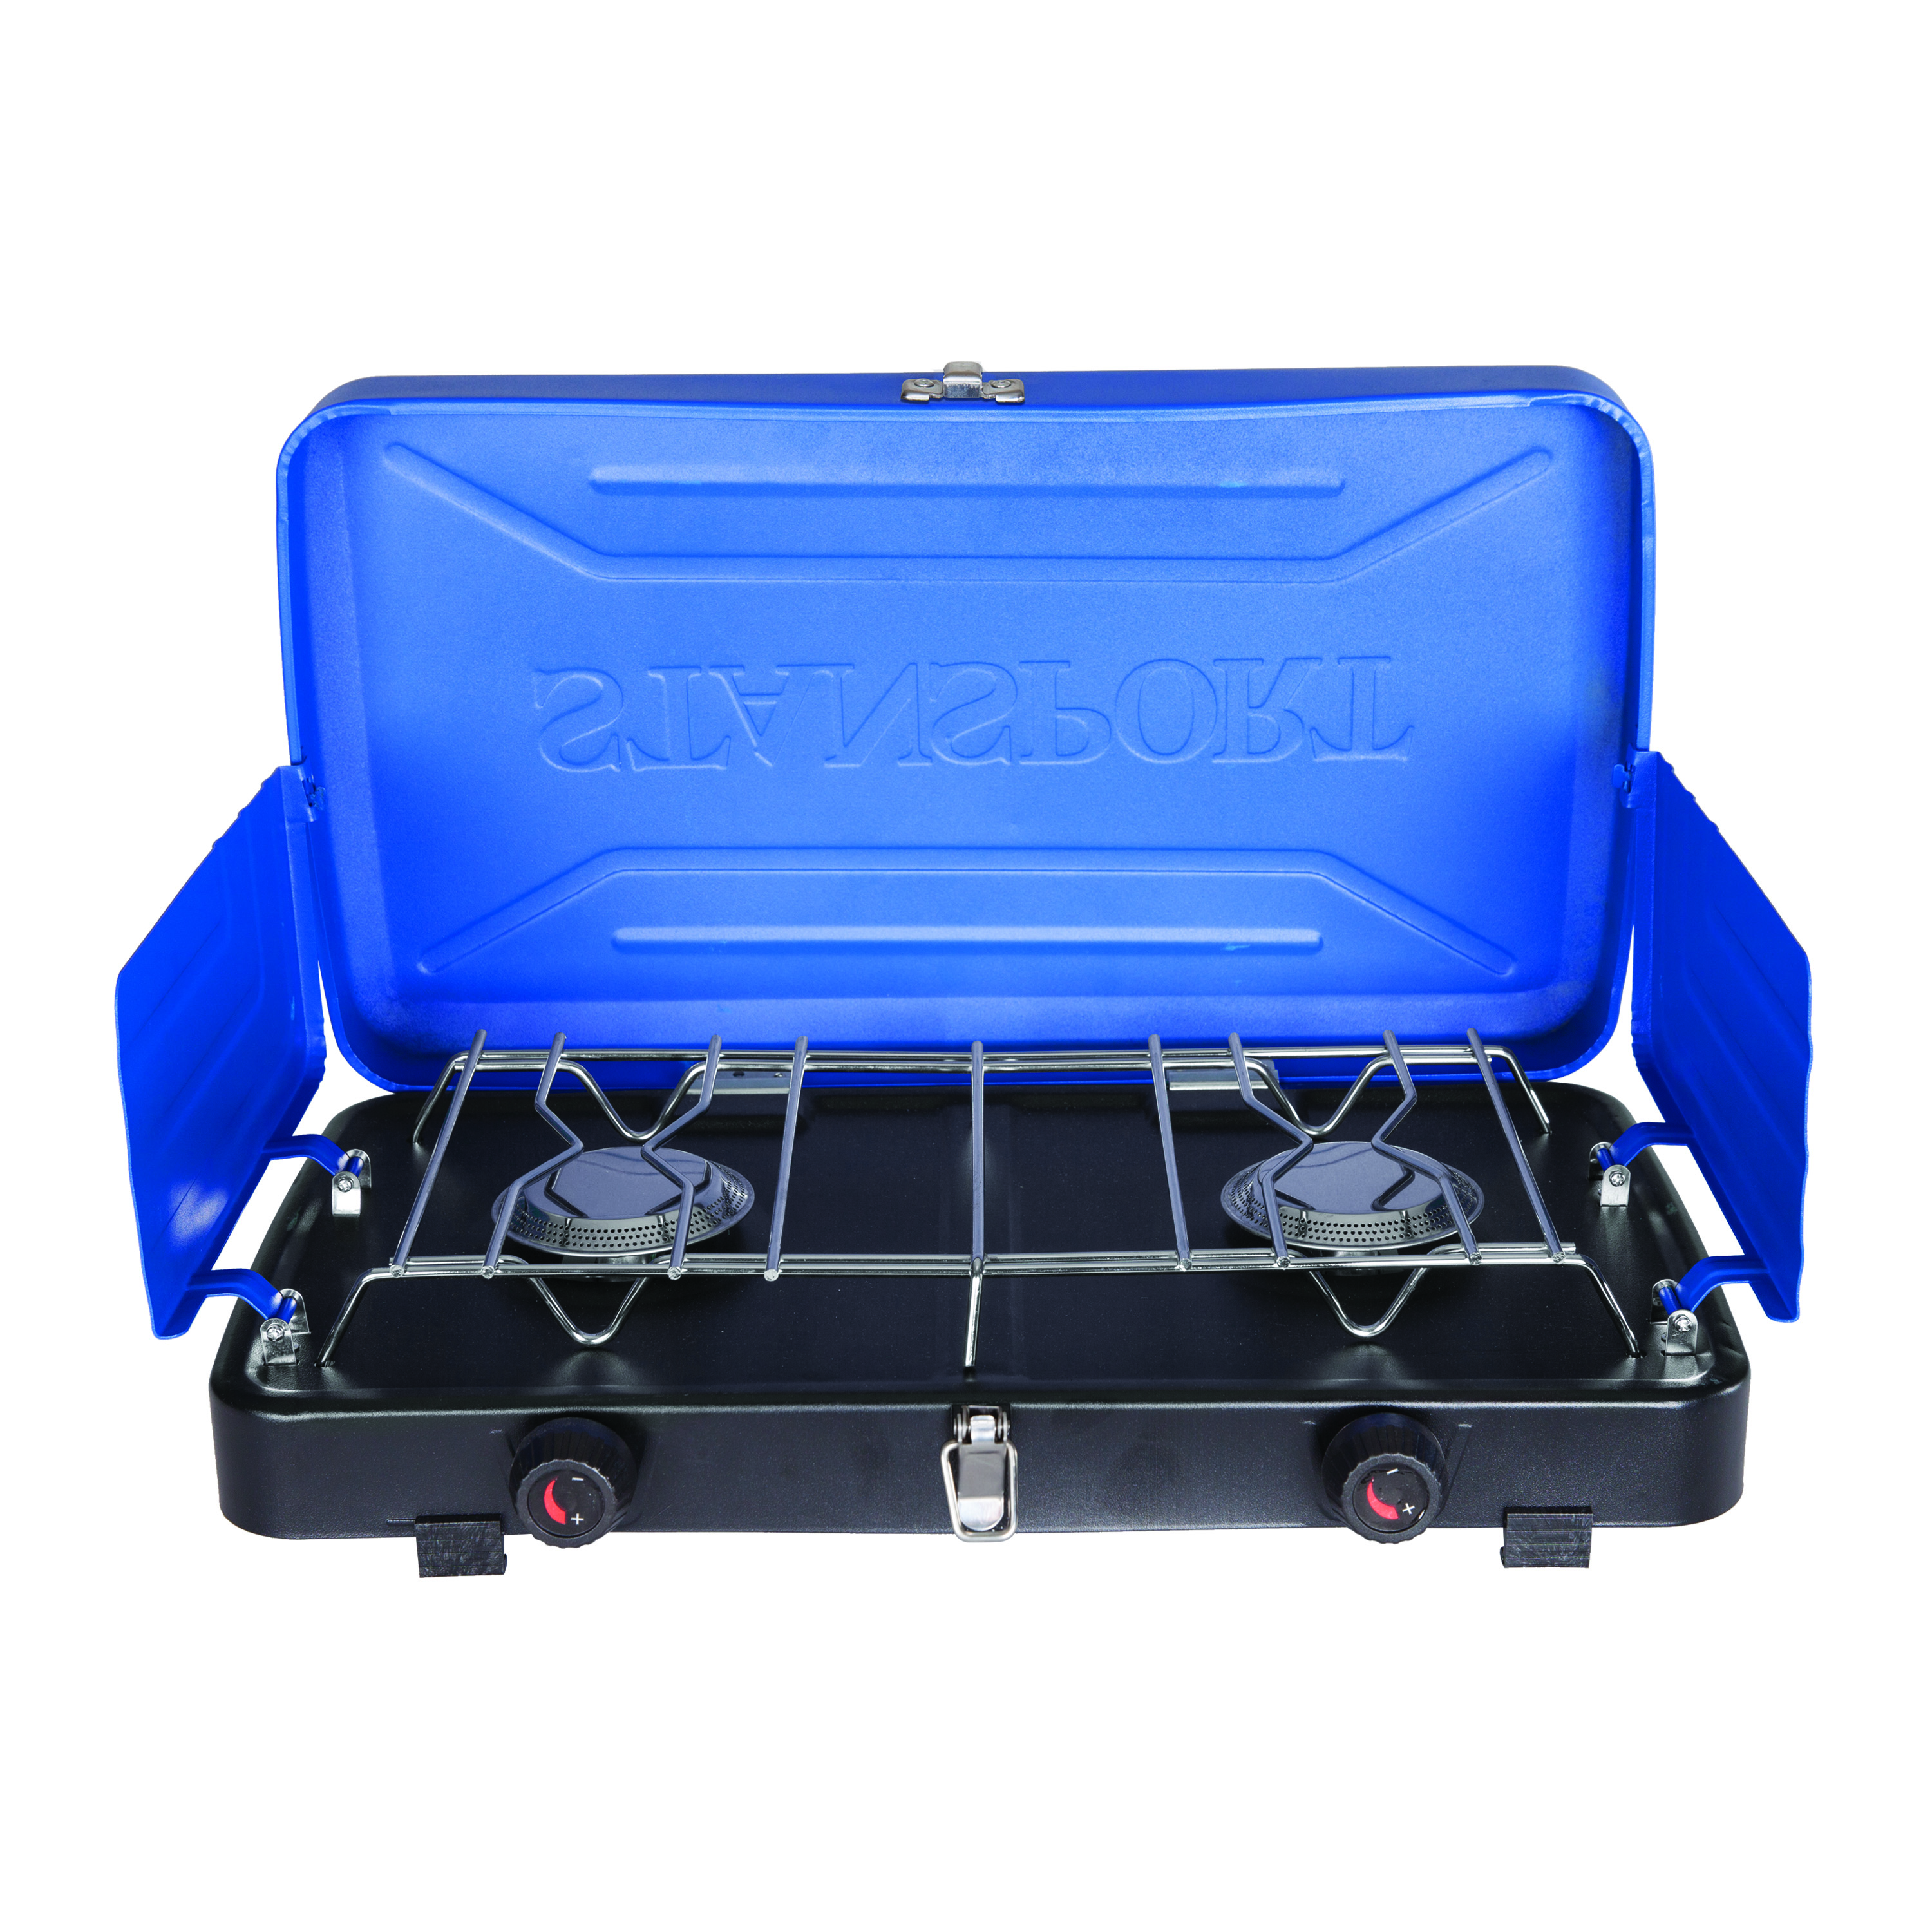 Stansport 2-Burner Propane Stove by Stansport